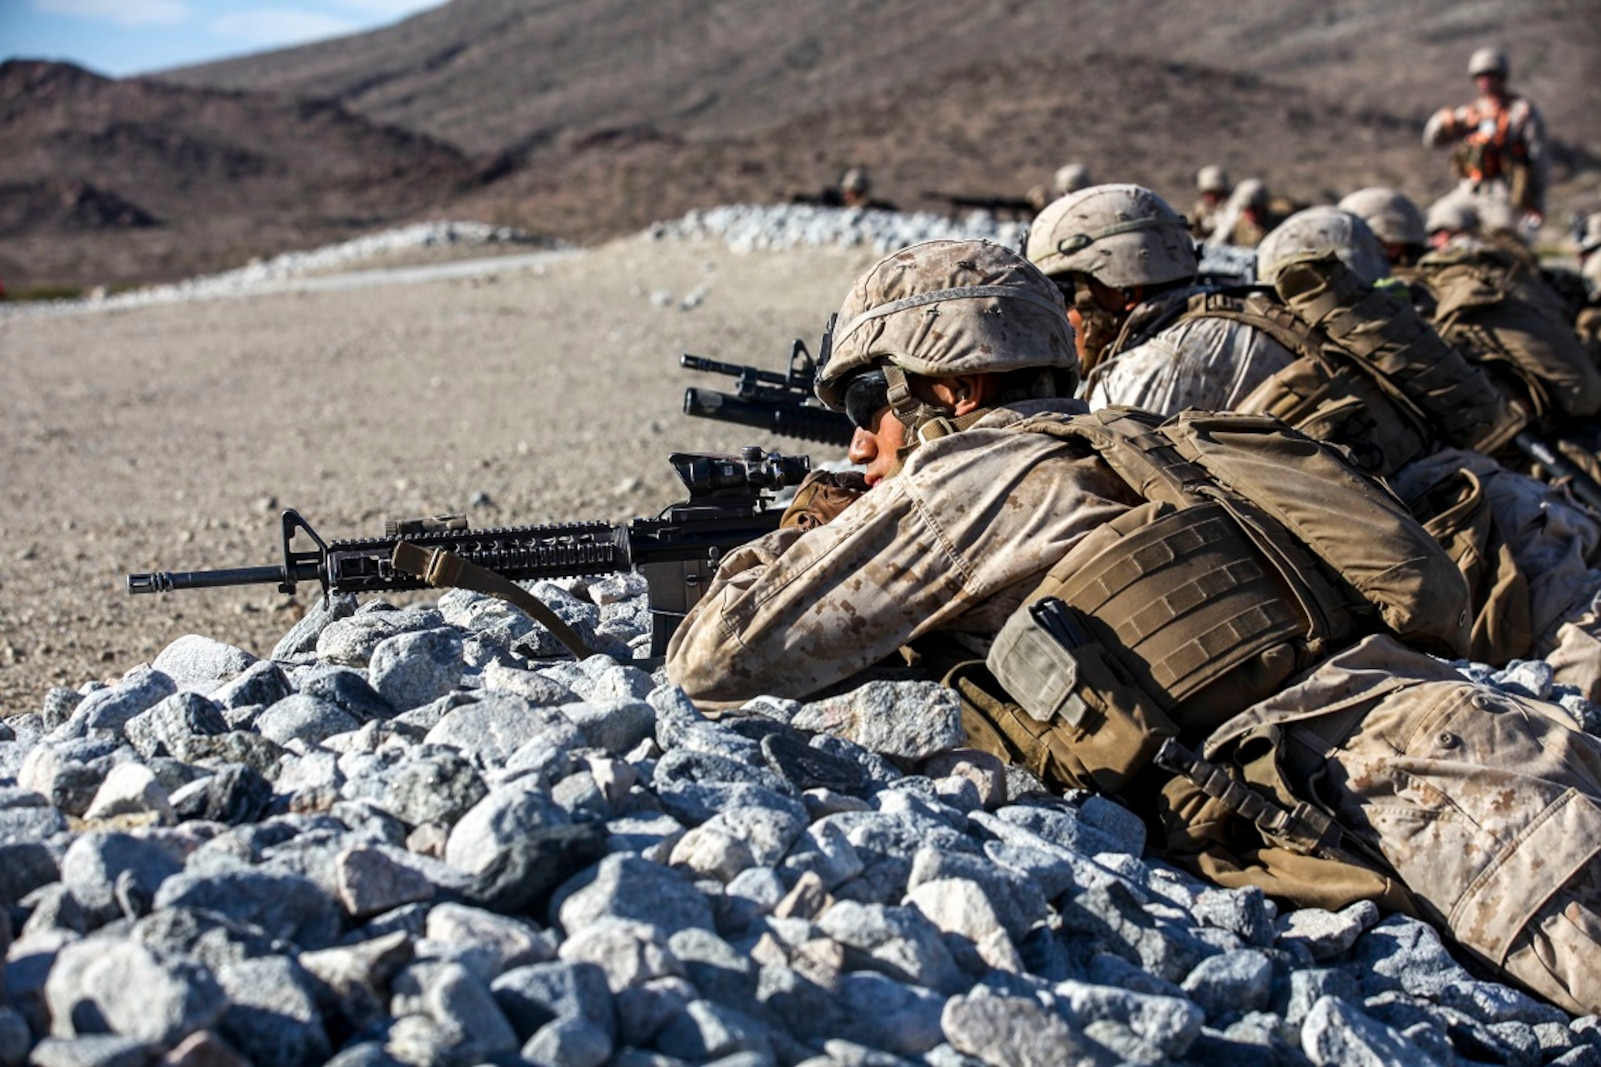 Marines with Company A, 1st Battalion, 7th Marine Regiment, provide security during a Military Operation on Urban Terrain exercise aboard Marine Corps Air Ground Combat Center Twentynine Palms, California, Aug. 11, 2015. The MOUT exercise was part of an Integrated Training Exercise that allowed the Marines with Animal Company to showcase their different capabilities in preparation for future deployments.